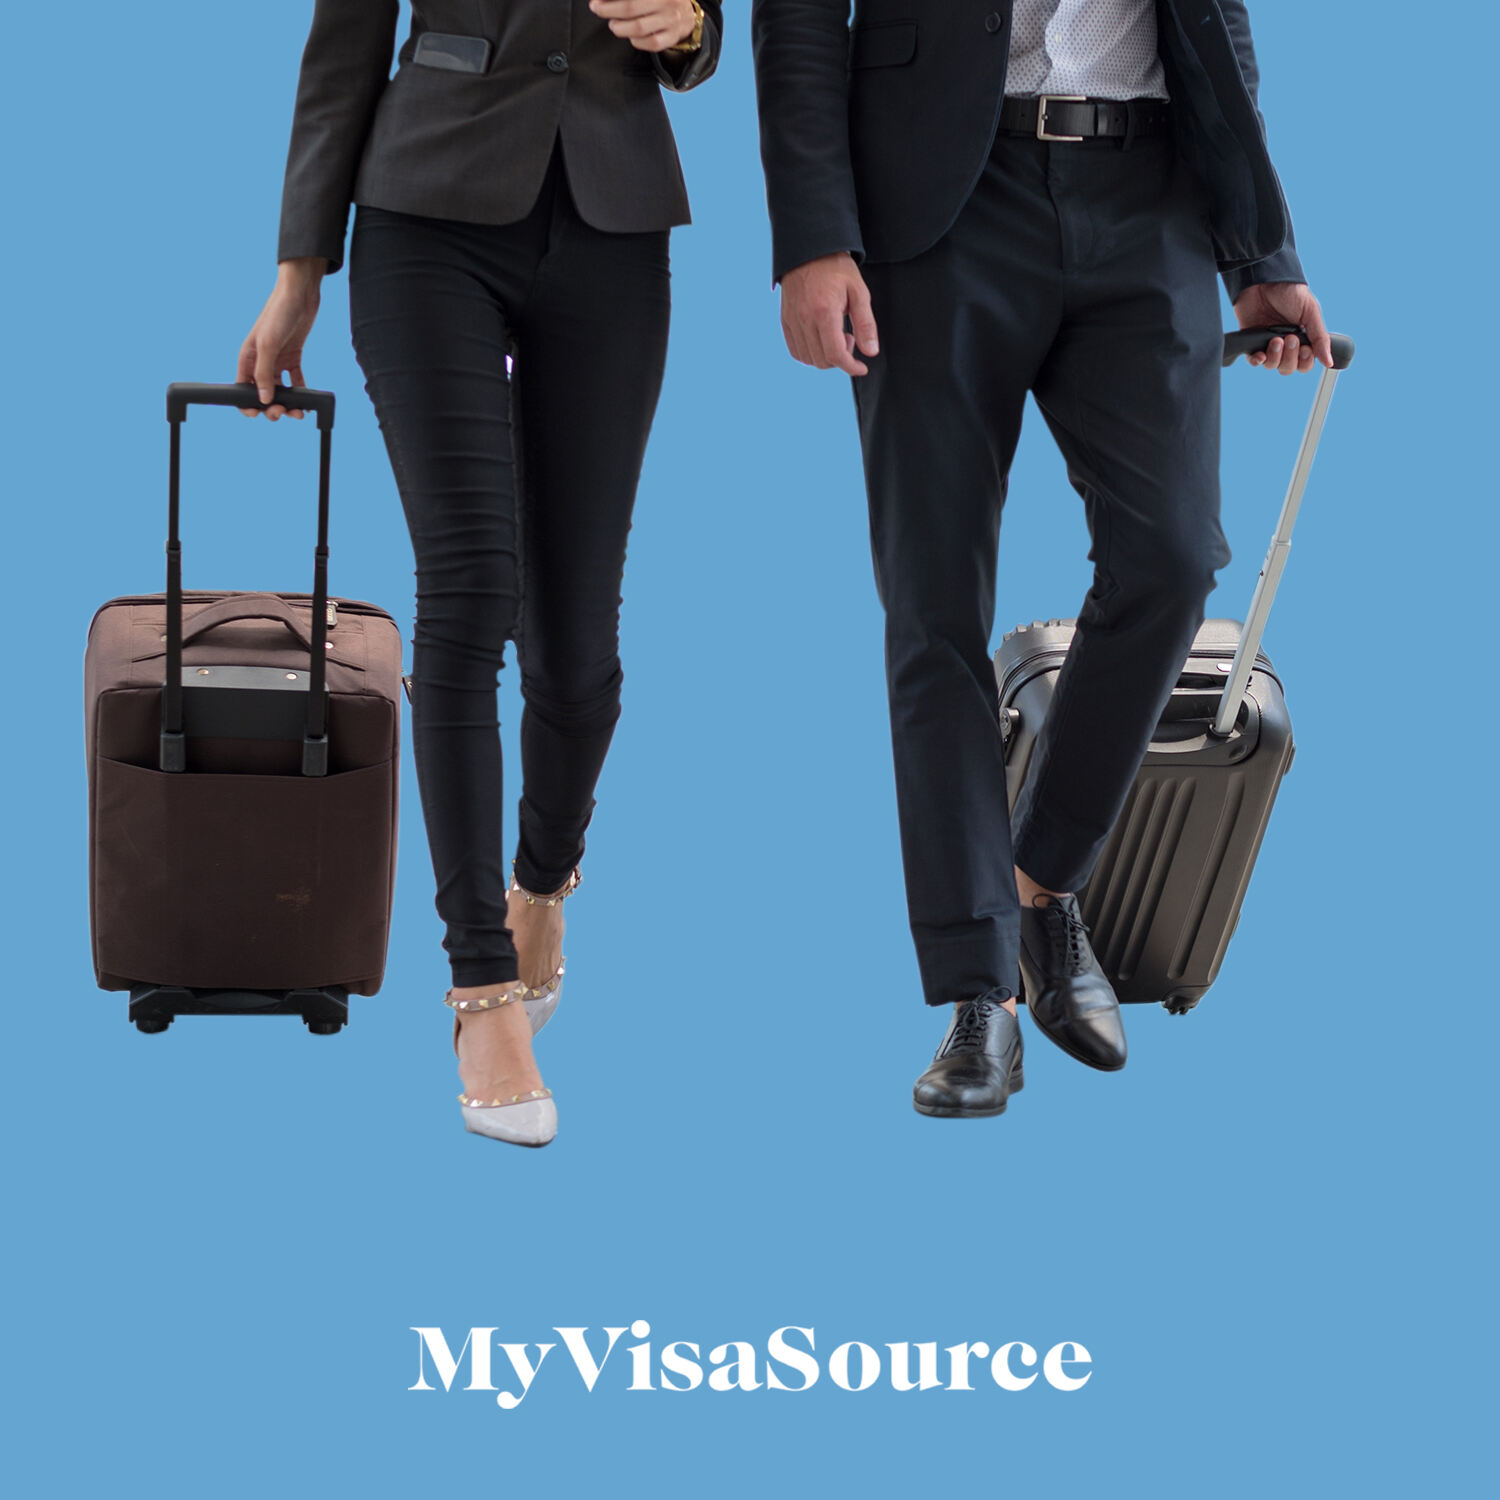 business travelers dragging their luggage with wheels and handles my visa source